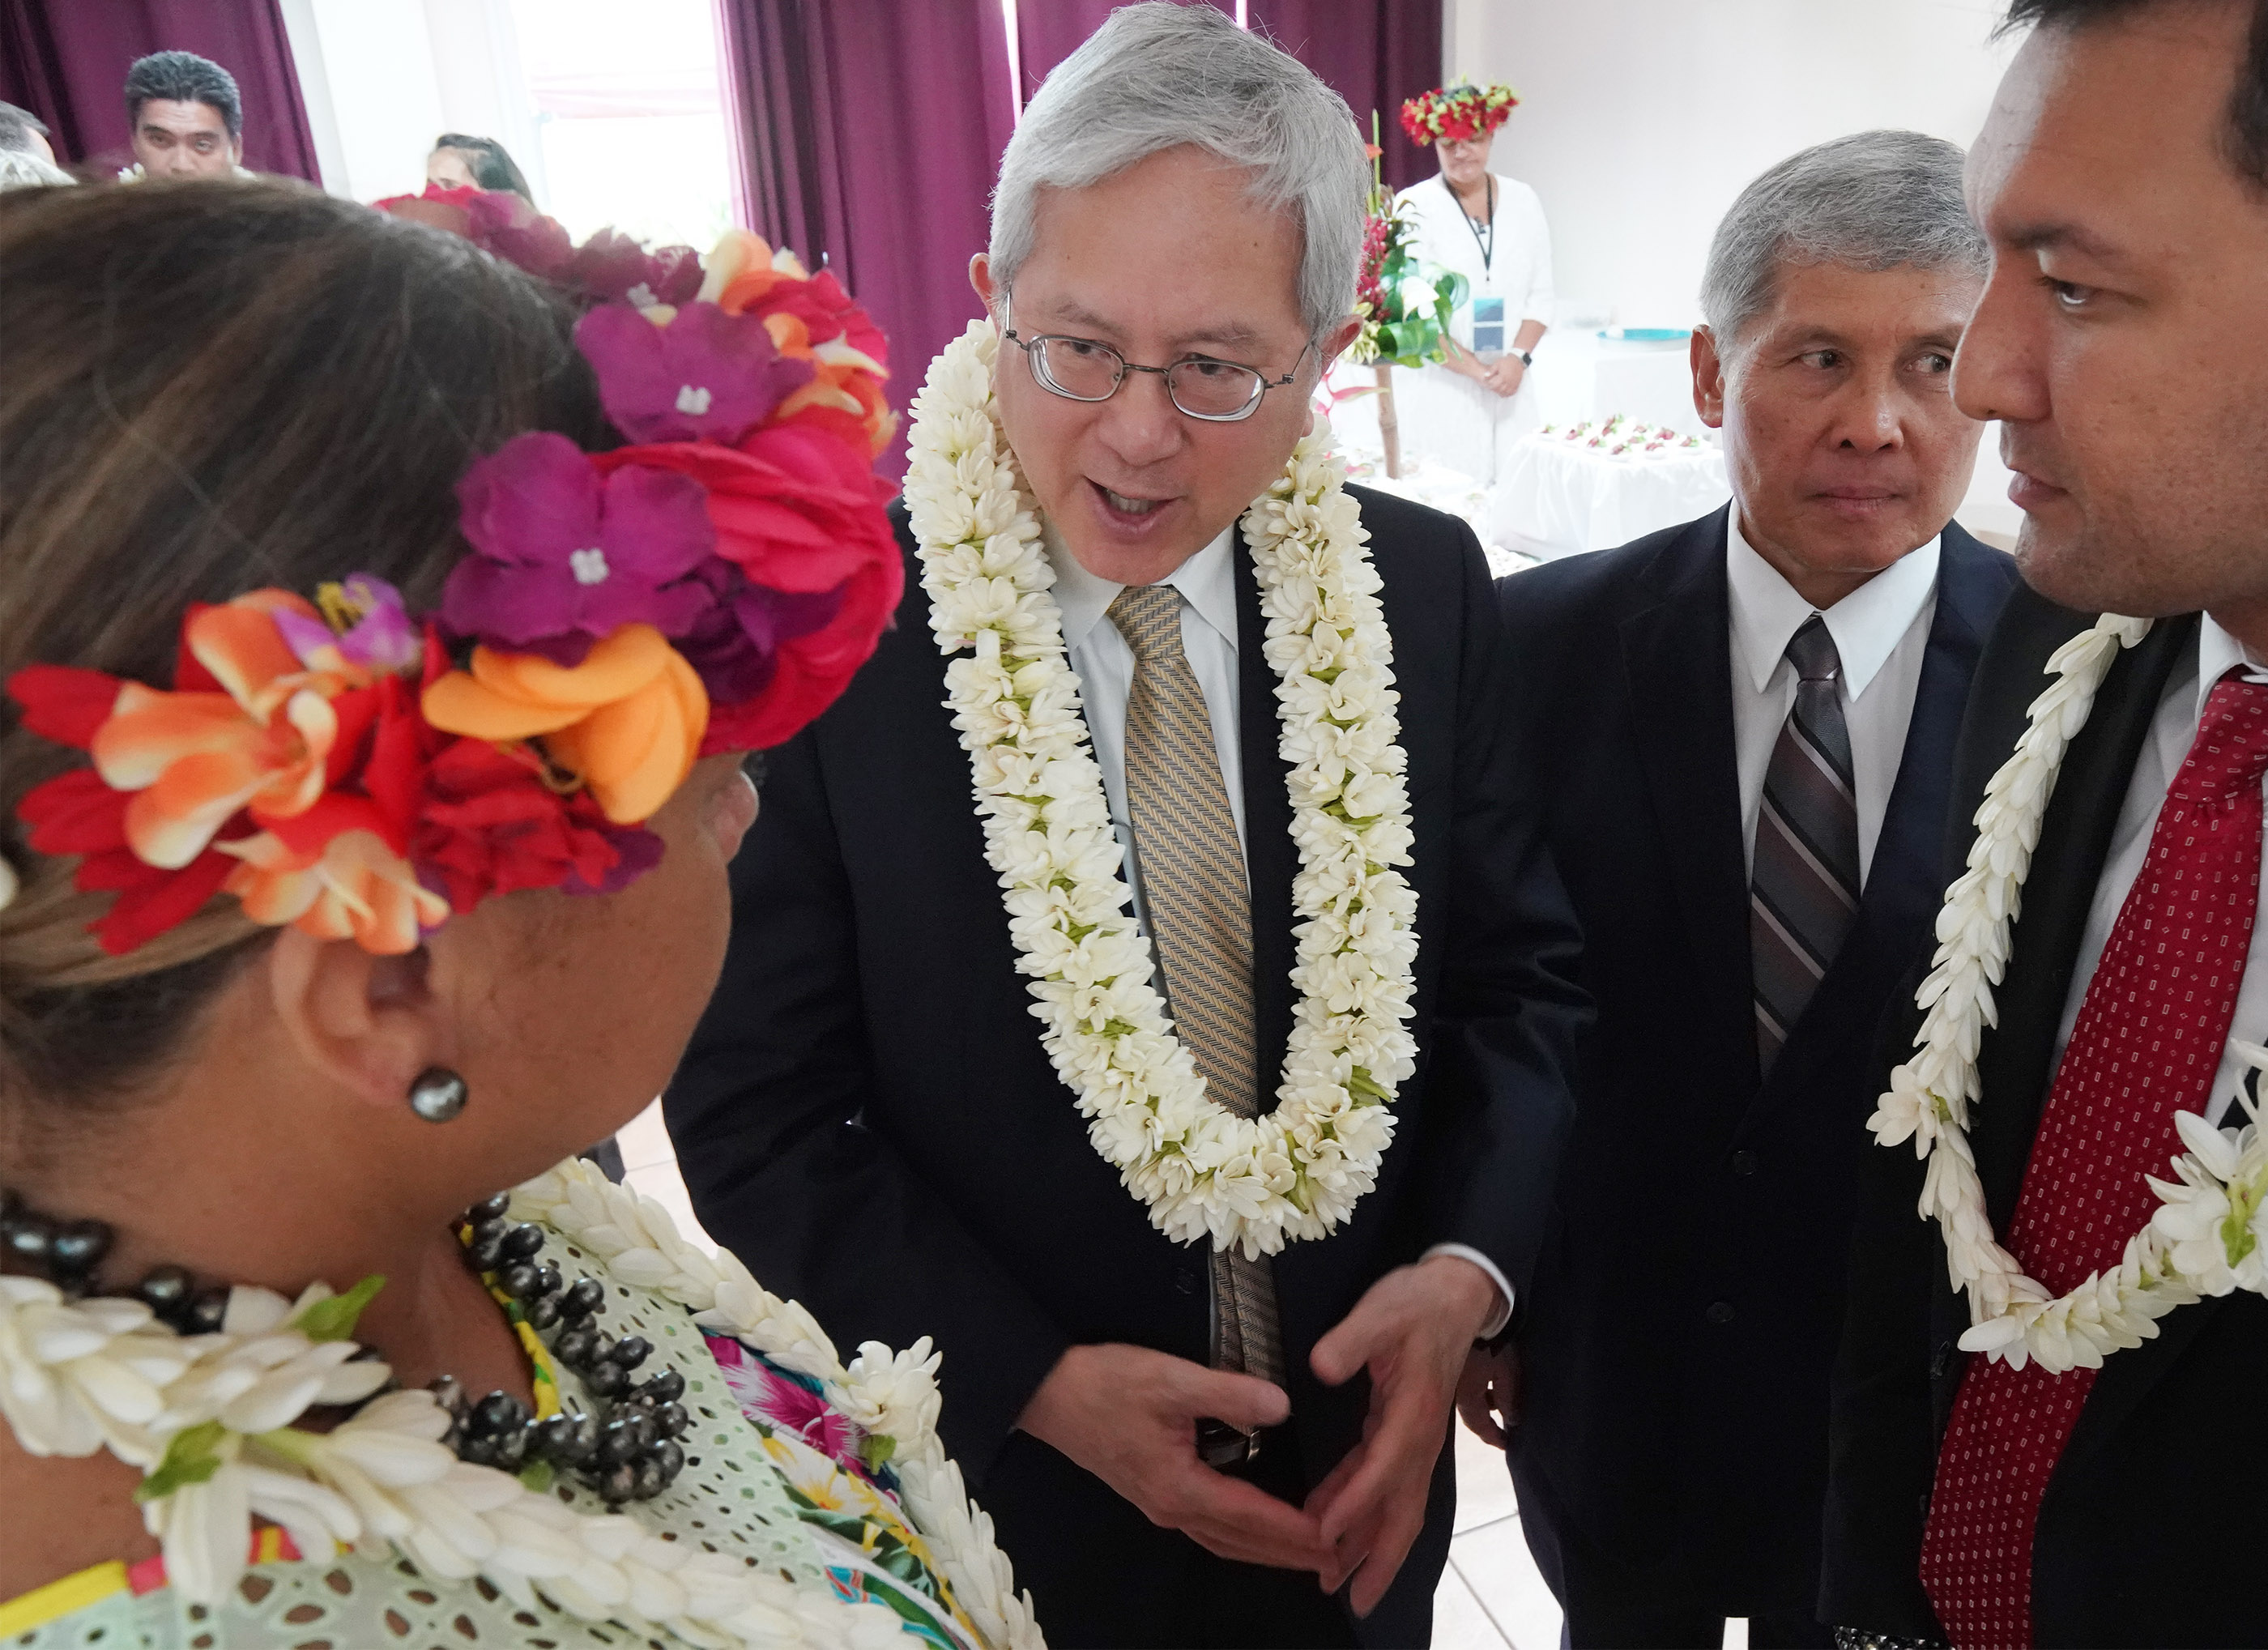 Elder Elder Gerrit W. Gong of The Church of Jesus Christ of Latter-day Saints' Quorum of the Twelve Apostles speaks to dignitaries in Papeete, Tahiti, on May 24, 2019.